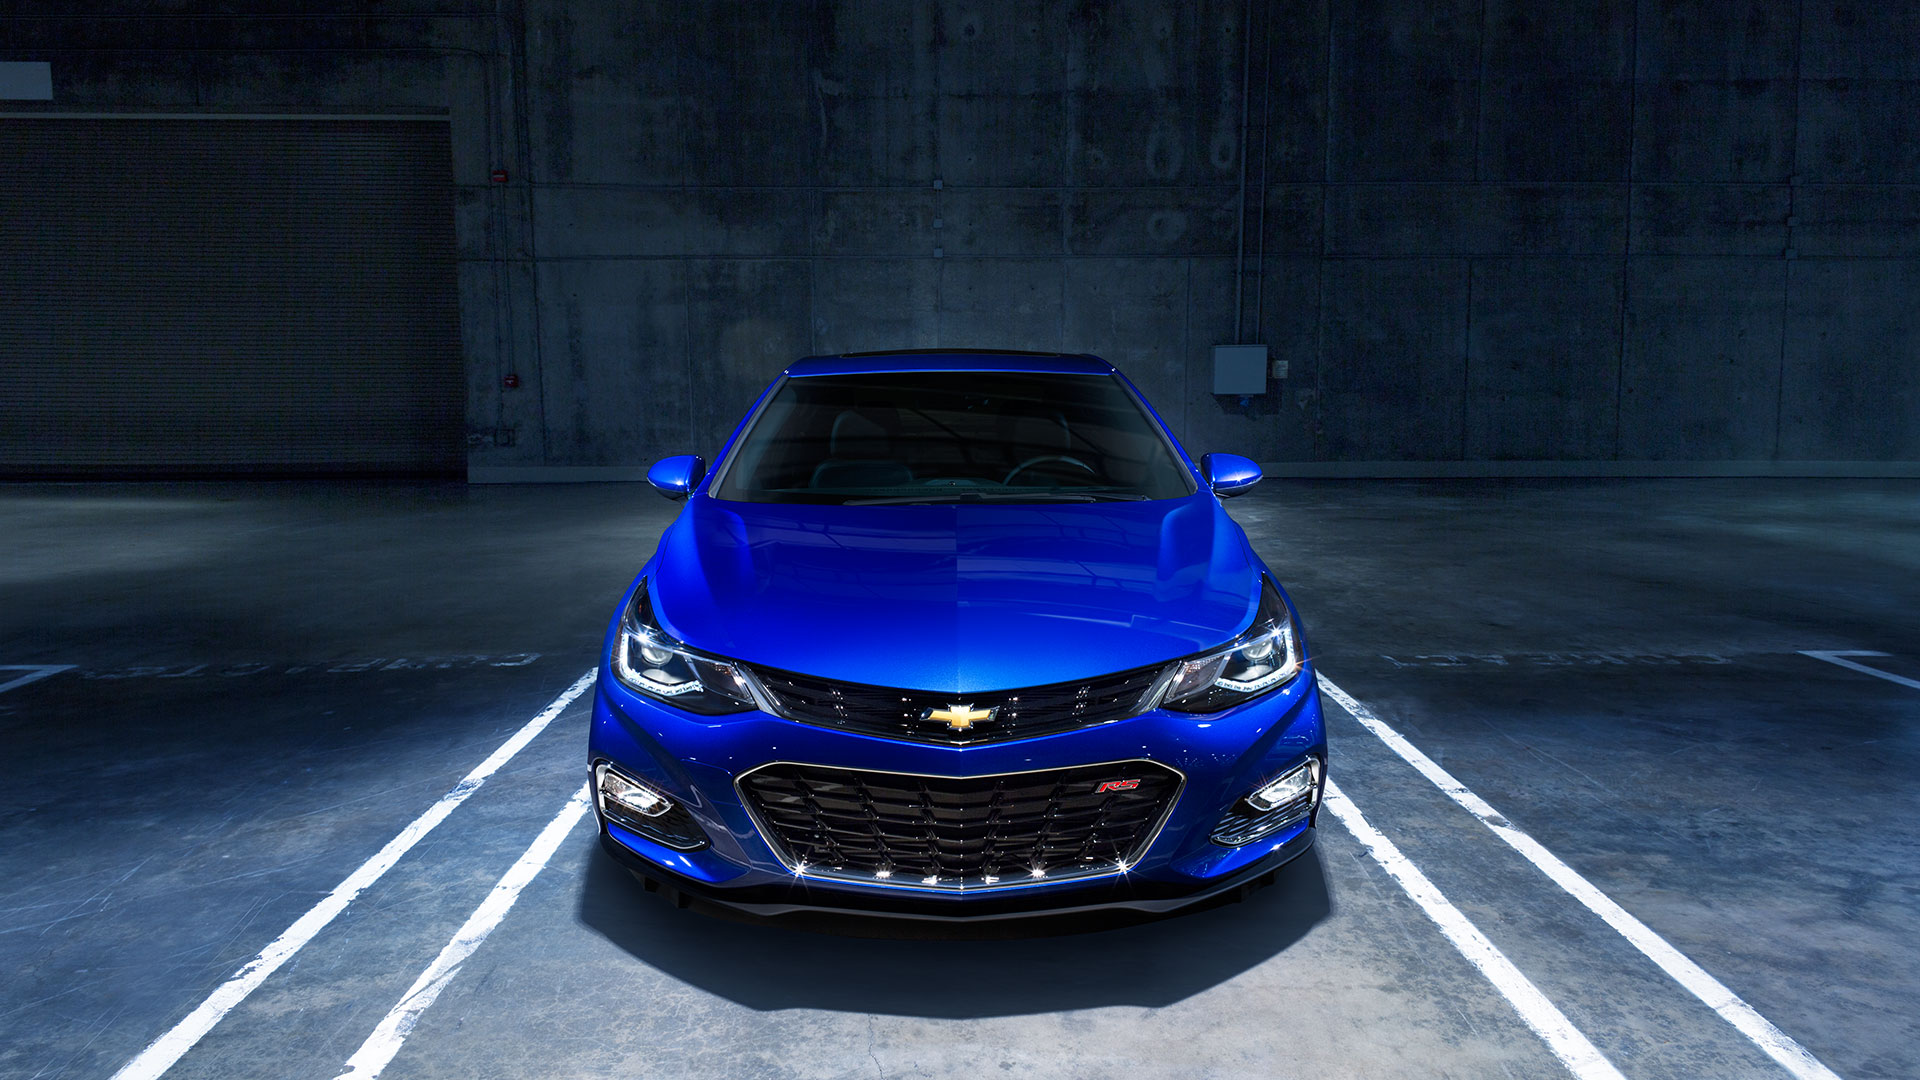 Chevy Cruze Ss >> Chevy Cruze vs. Ford Fusion: Why the Chevy Wins Head to Head - Zimbrick Chevrolet Blog